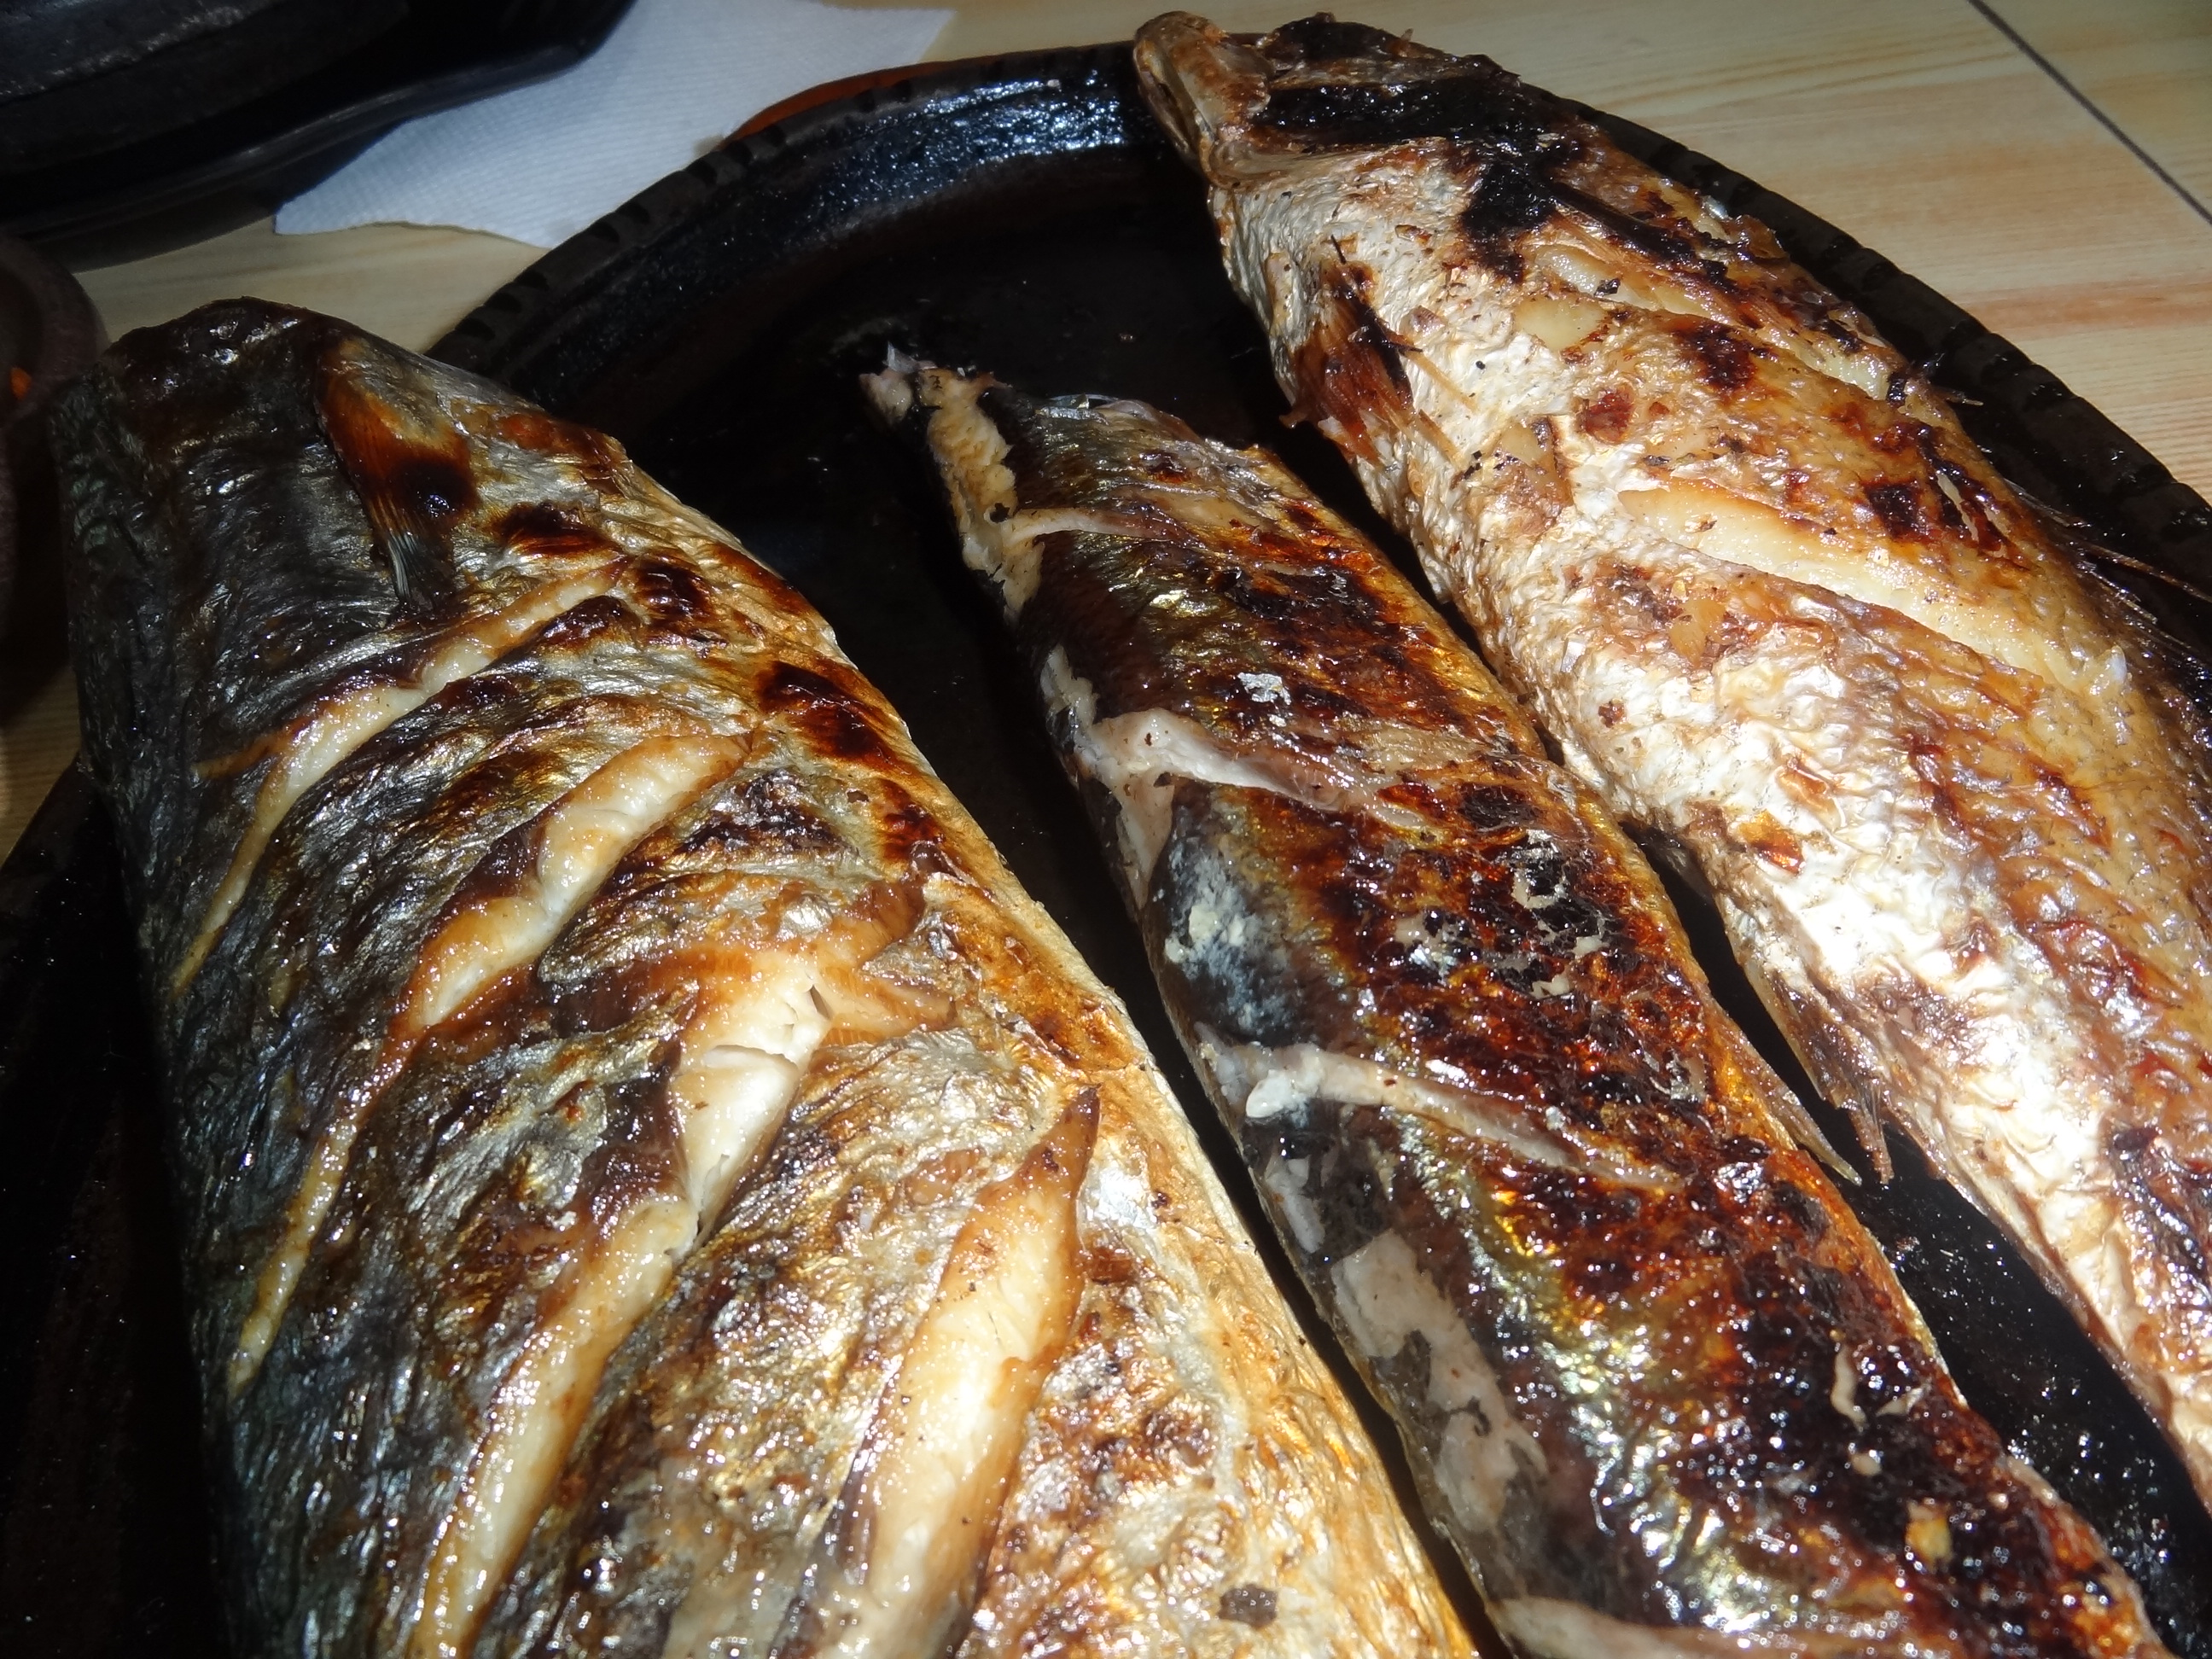 Best grilled fish in korea myfoodandtraveljourneys for Best fish to grill